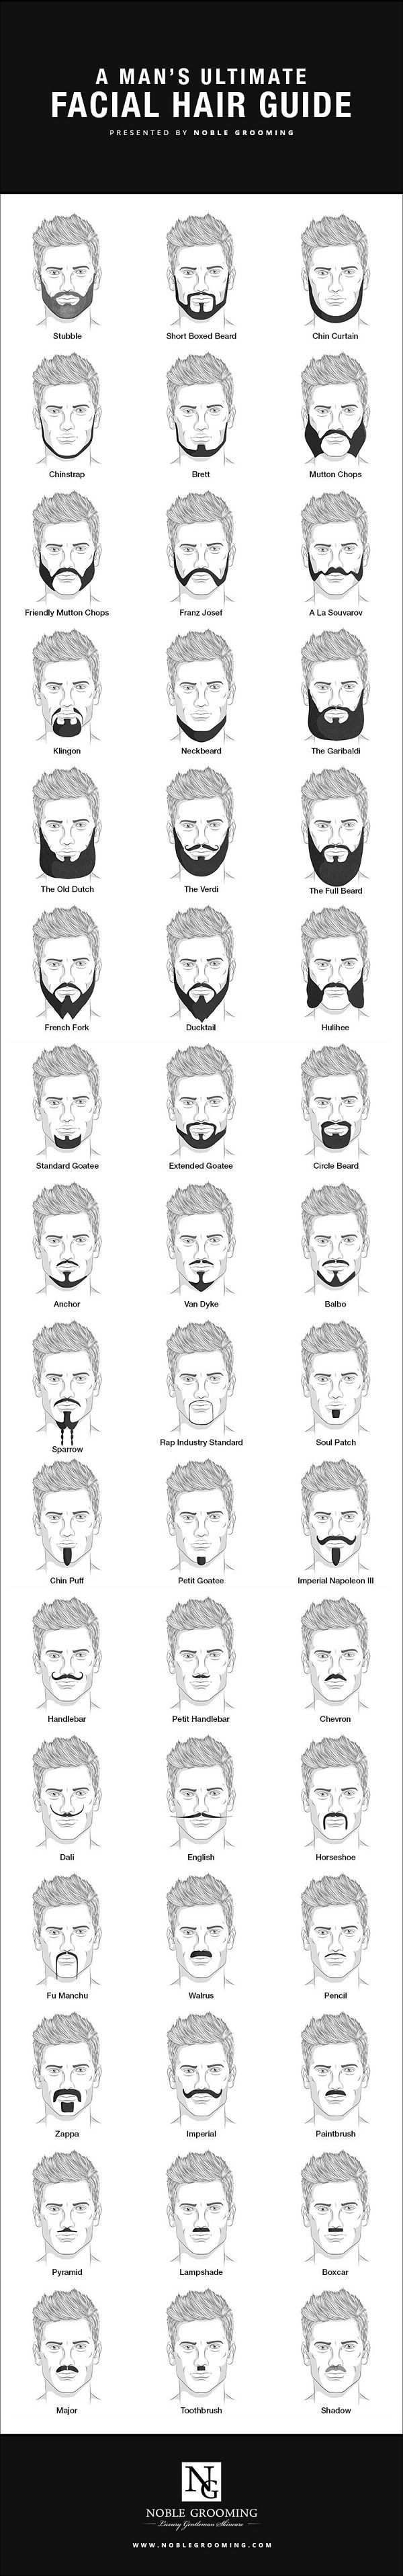 Infographic: The Ultimate Guide To Facial Hair Styles For Men - DesignTAXI.com                                                                                                                                                                                 More